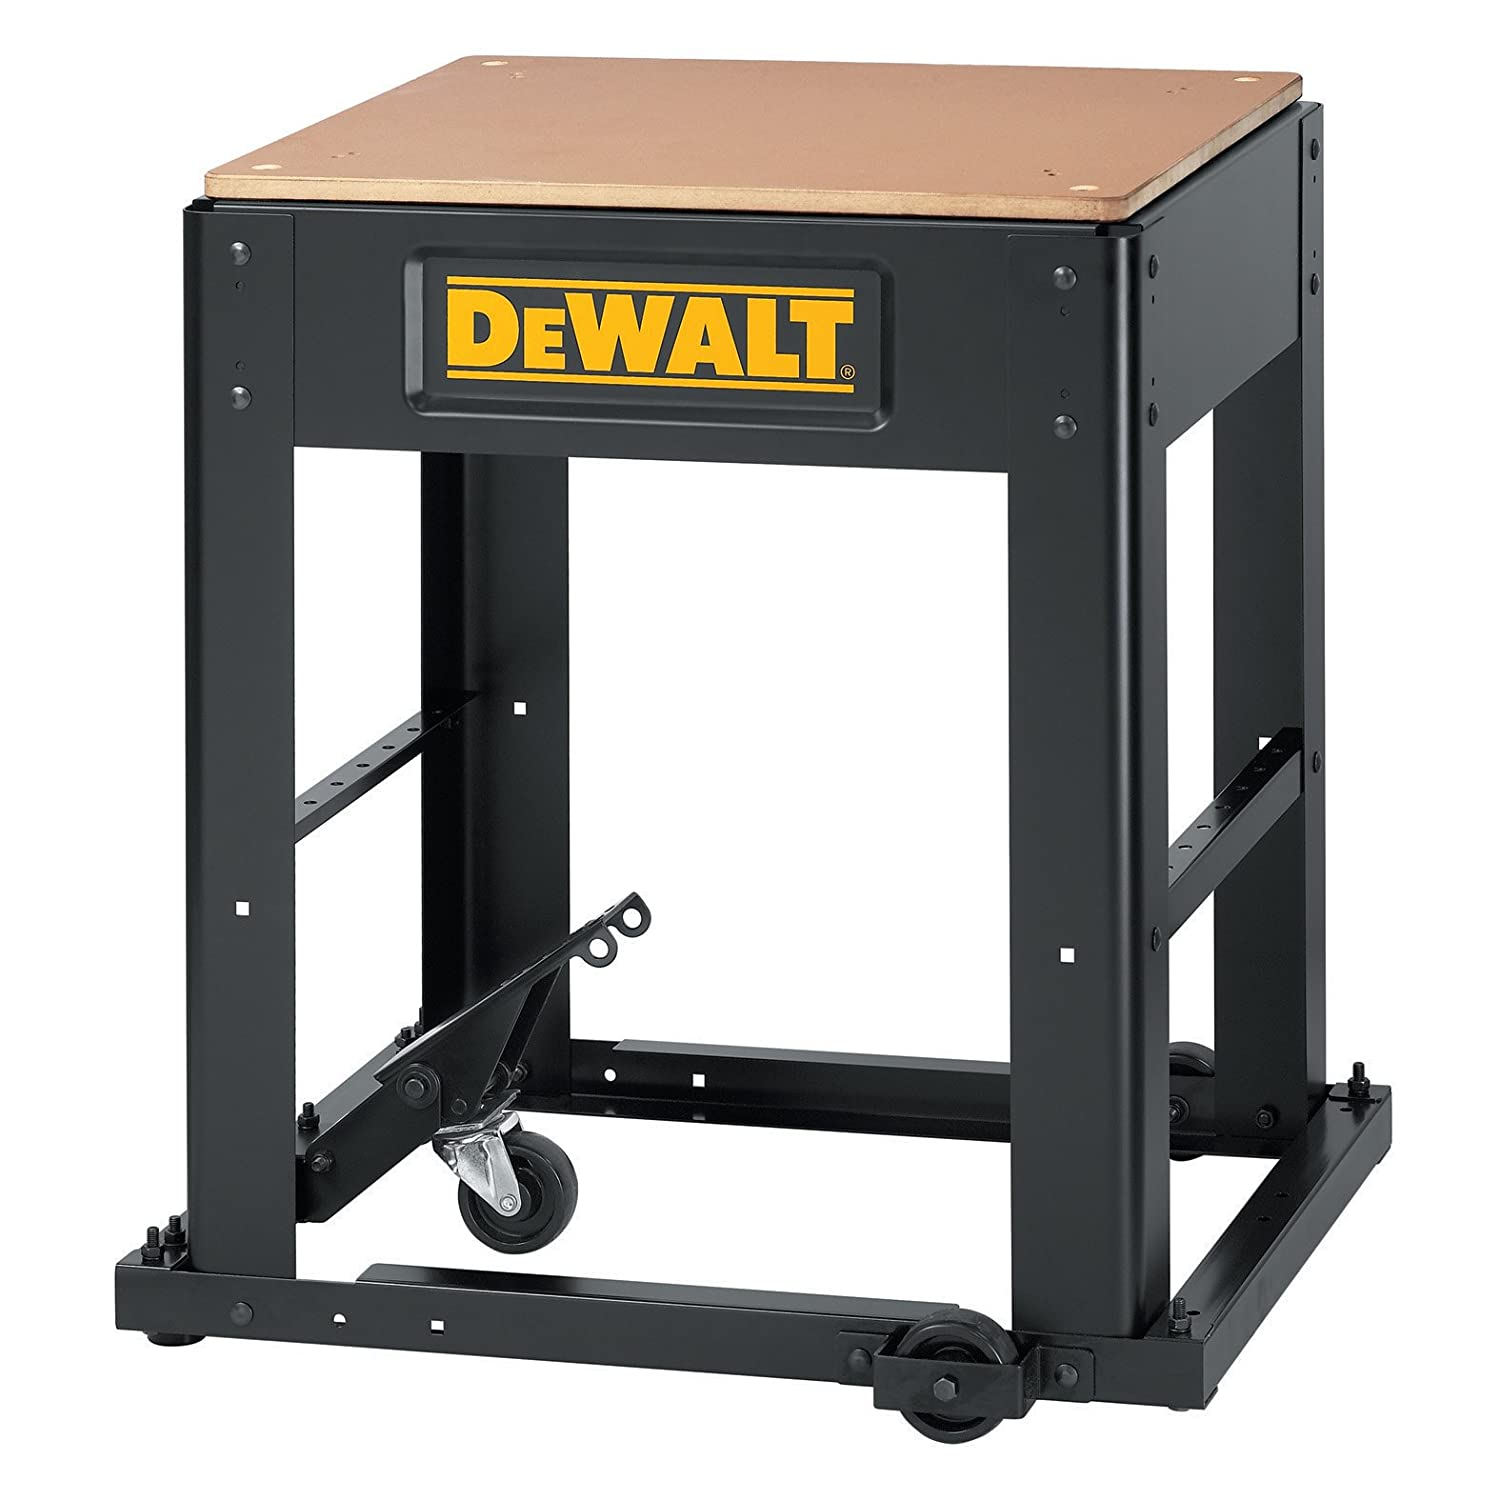 DEWALT DW7350 Planer Stand with Integrated Mobile Base